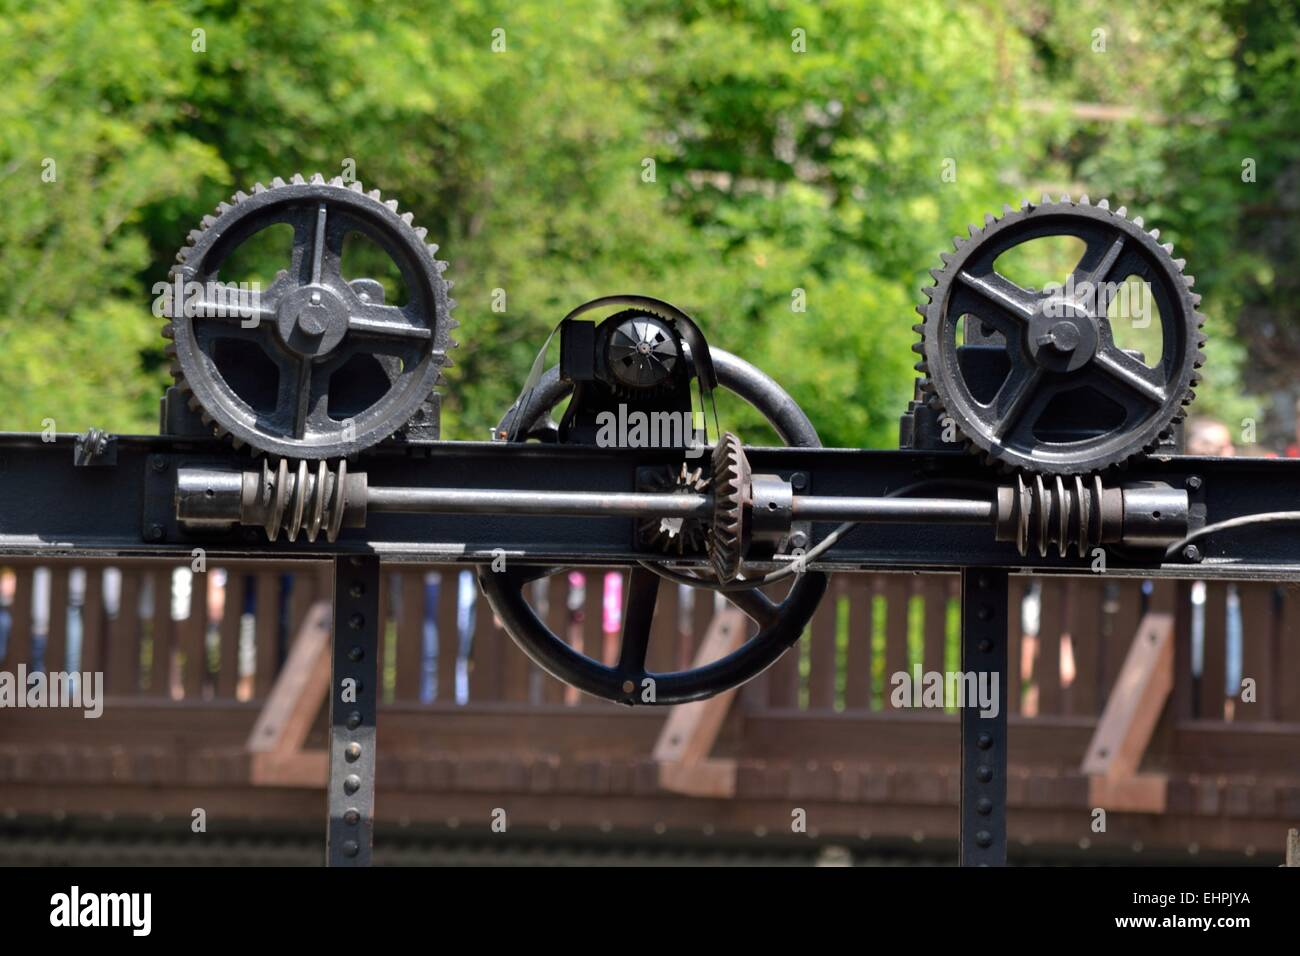 Gears in interaction - Stock Image